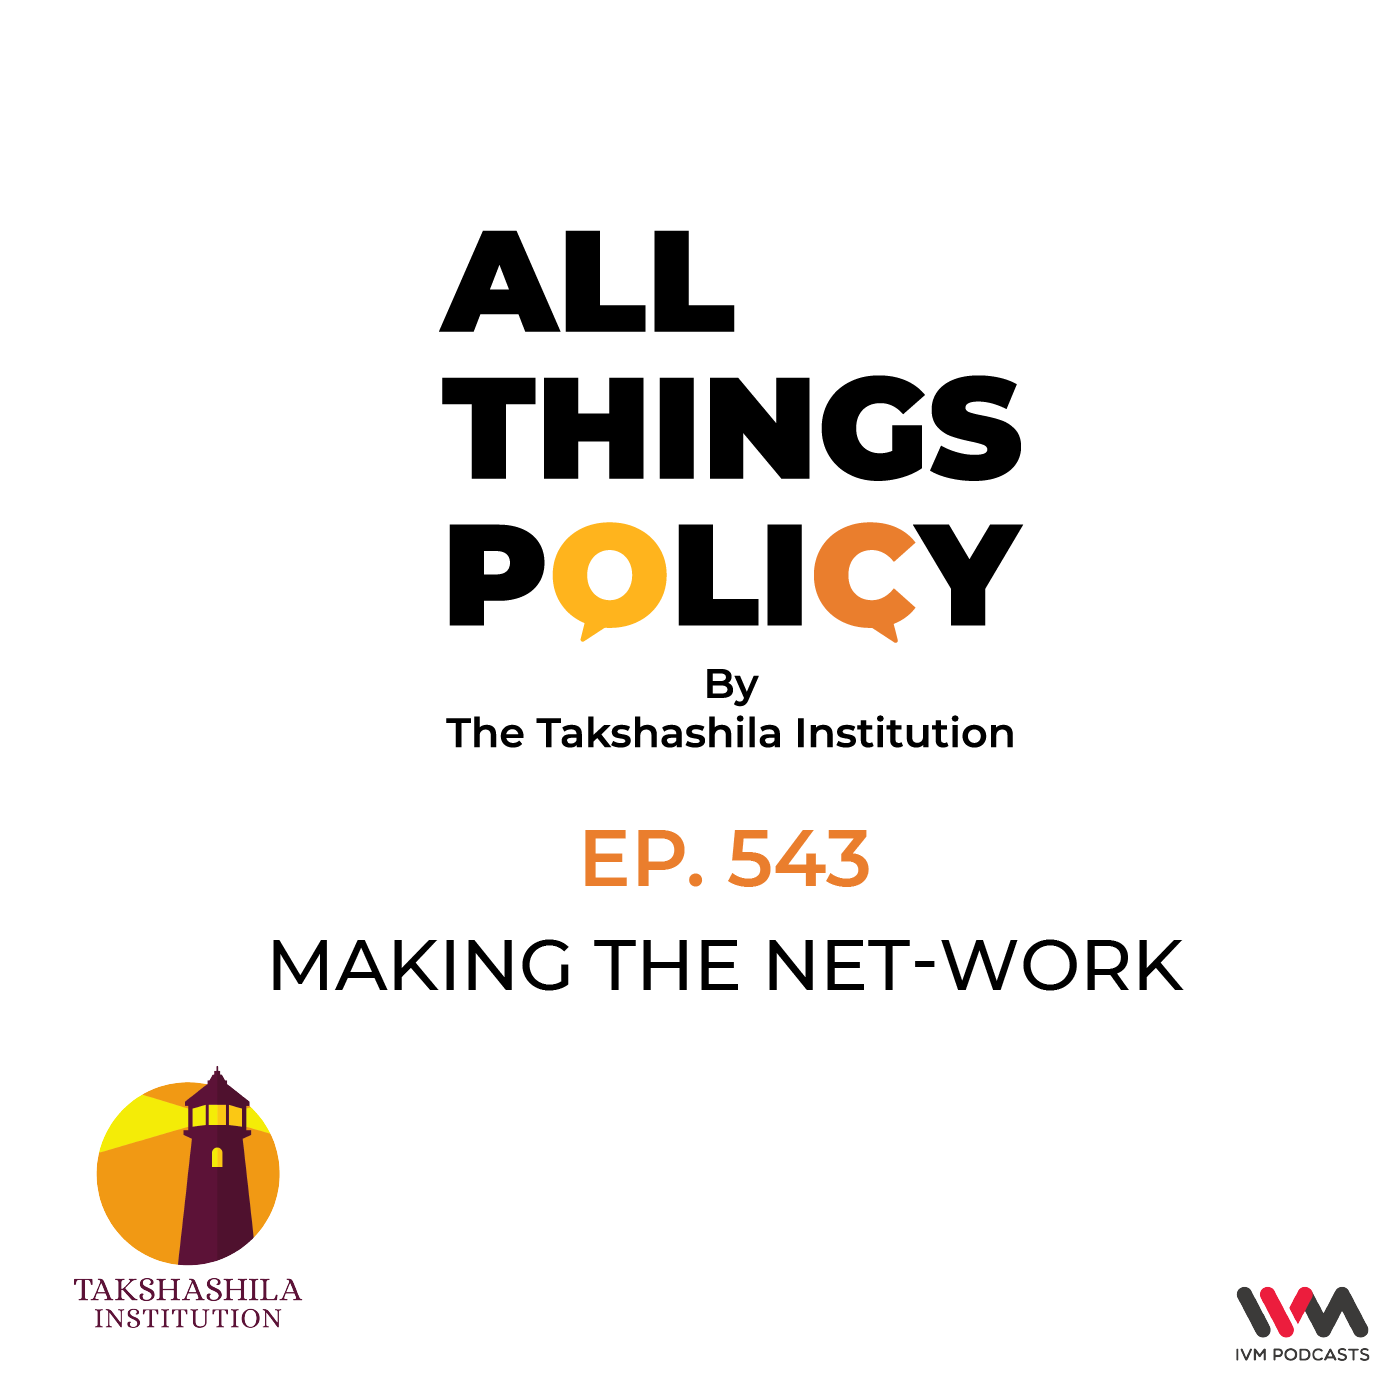 Ep. 543: Making the Net-work